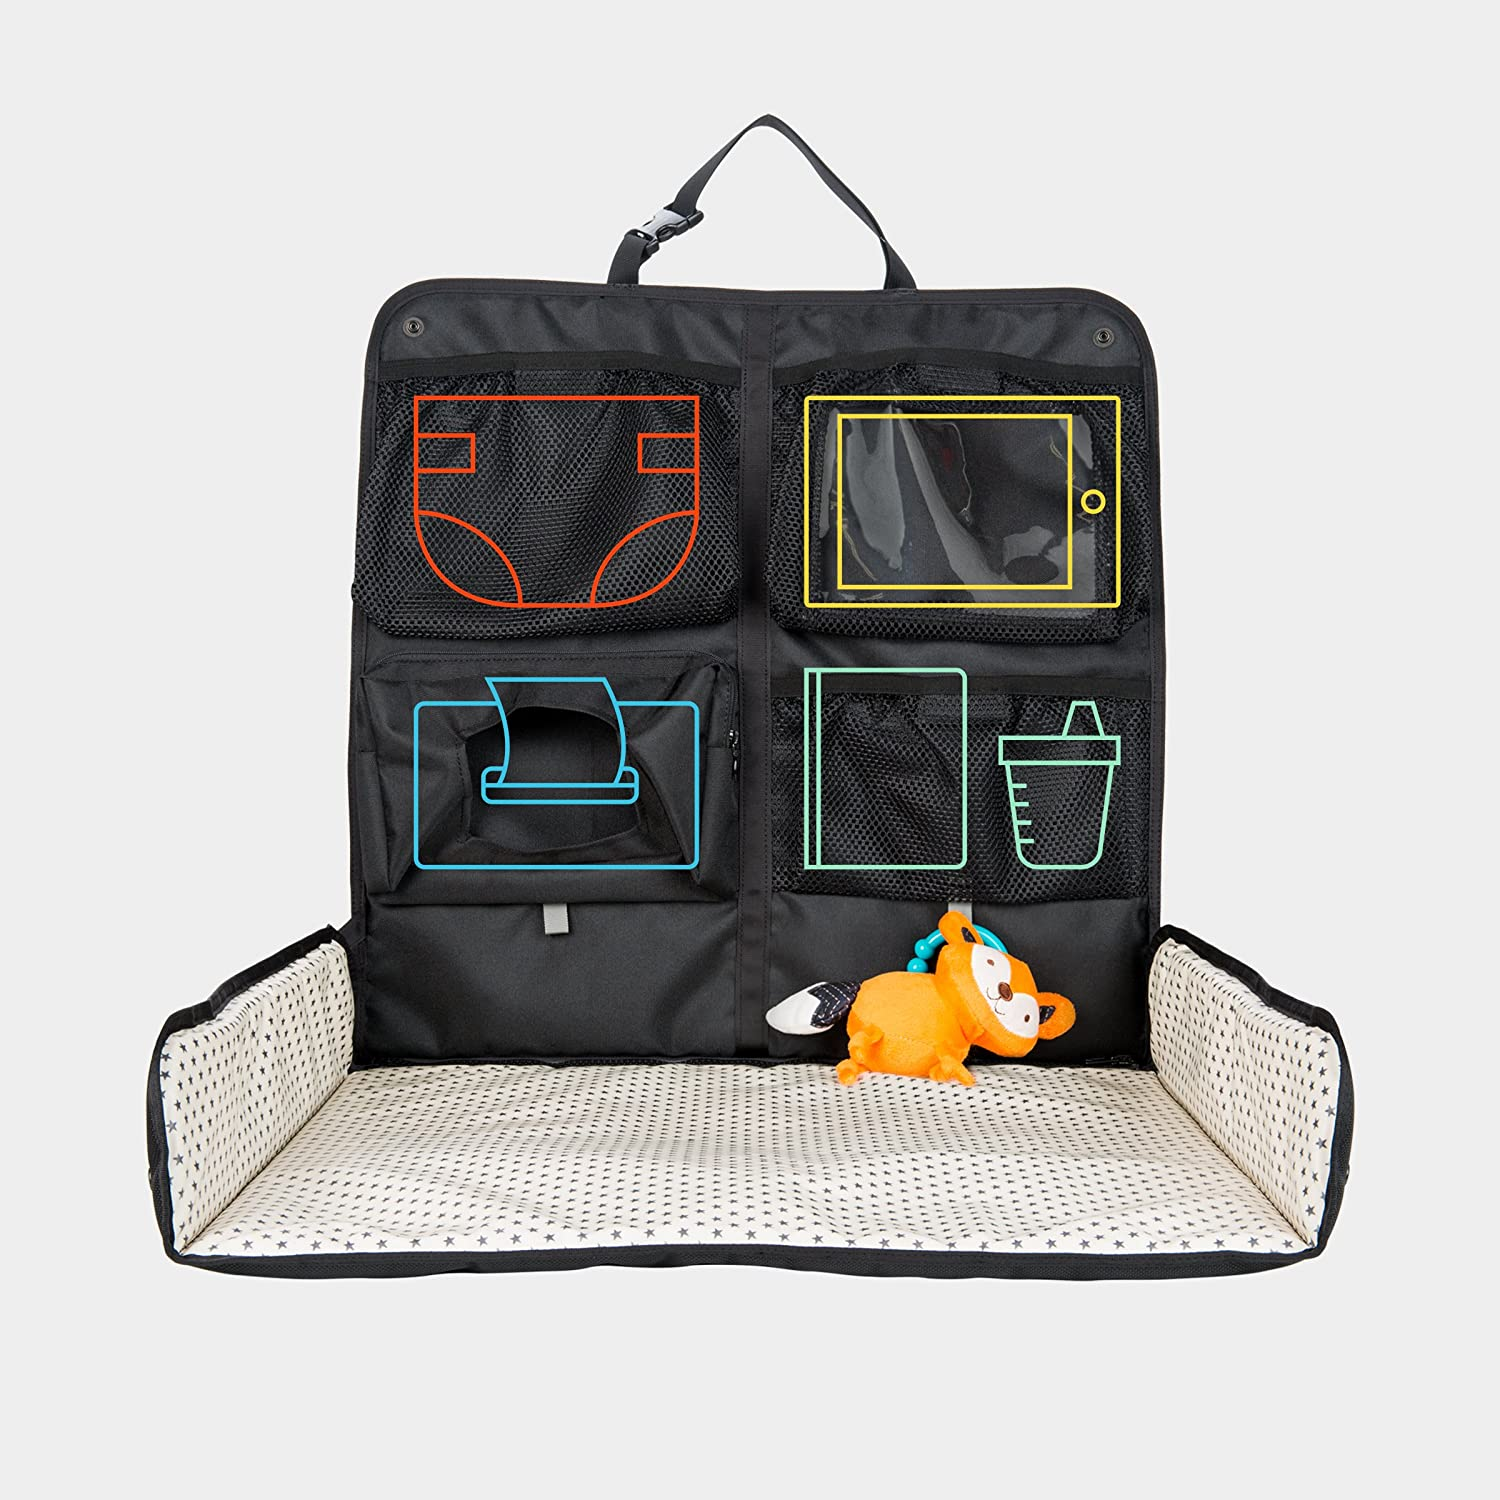 Beanko Baby | Diaper Changing Station for Your Car | Portable, Waterproof, Detachable, Toy Loops, 4 Pockets, Wet Wipes Holder, Tummy Time Mat, Kick Mat, Tablet Holder | LUMI - Black with Ministars